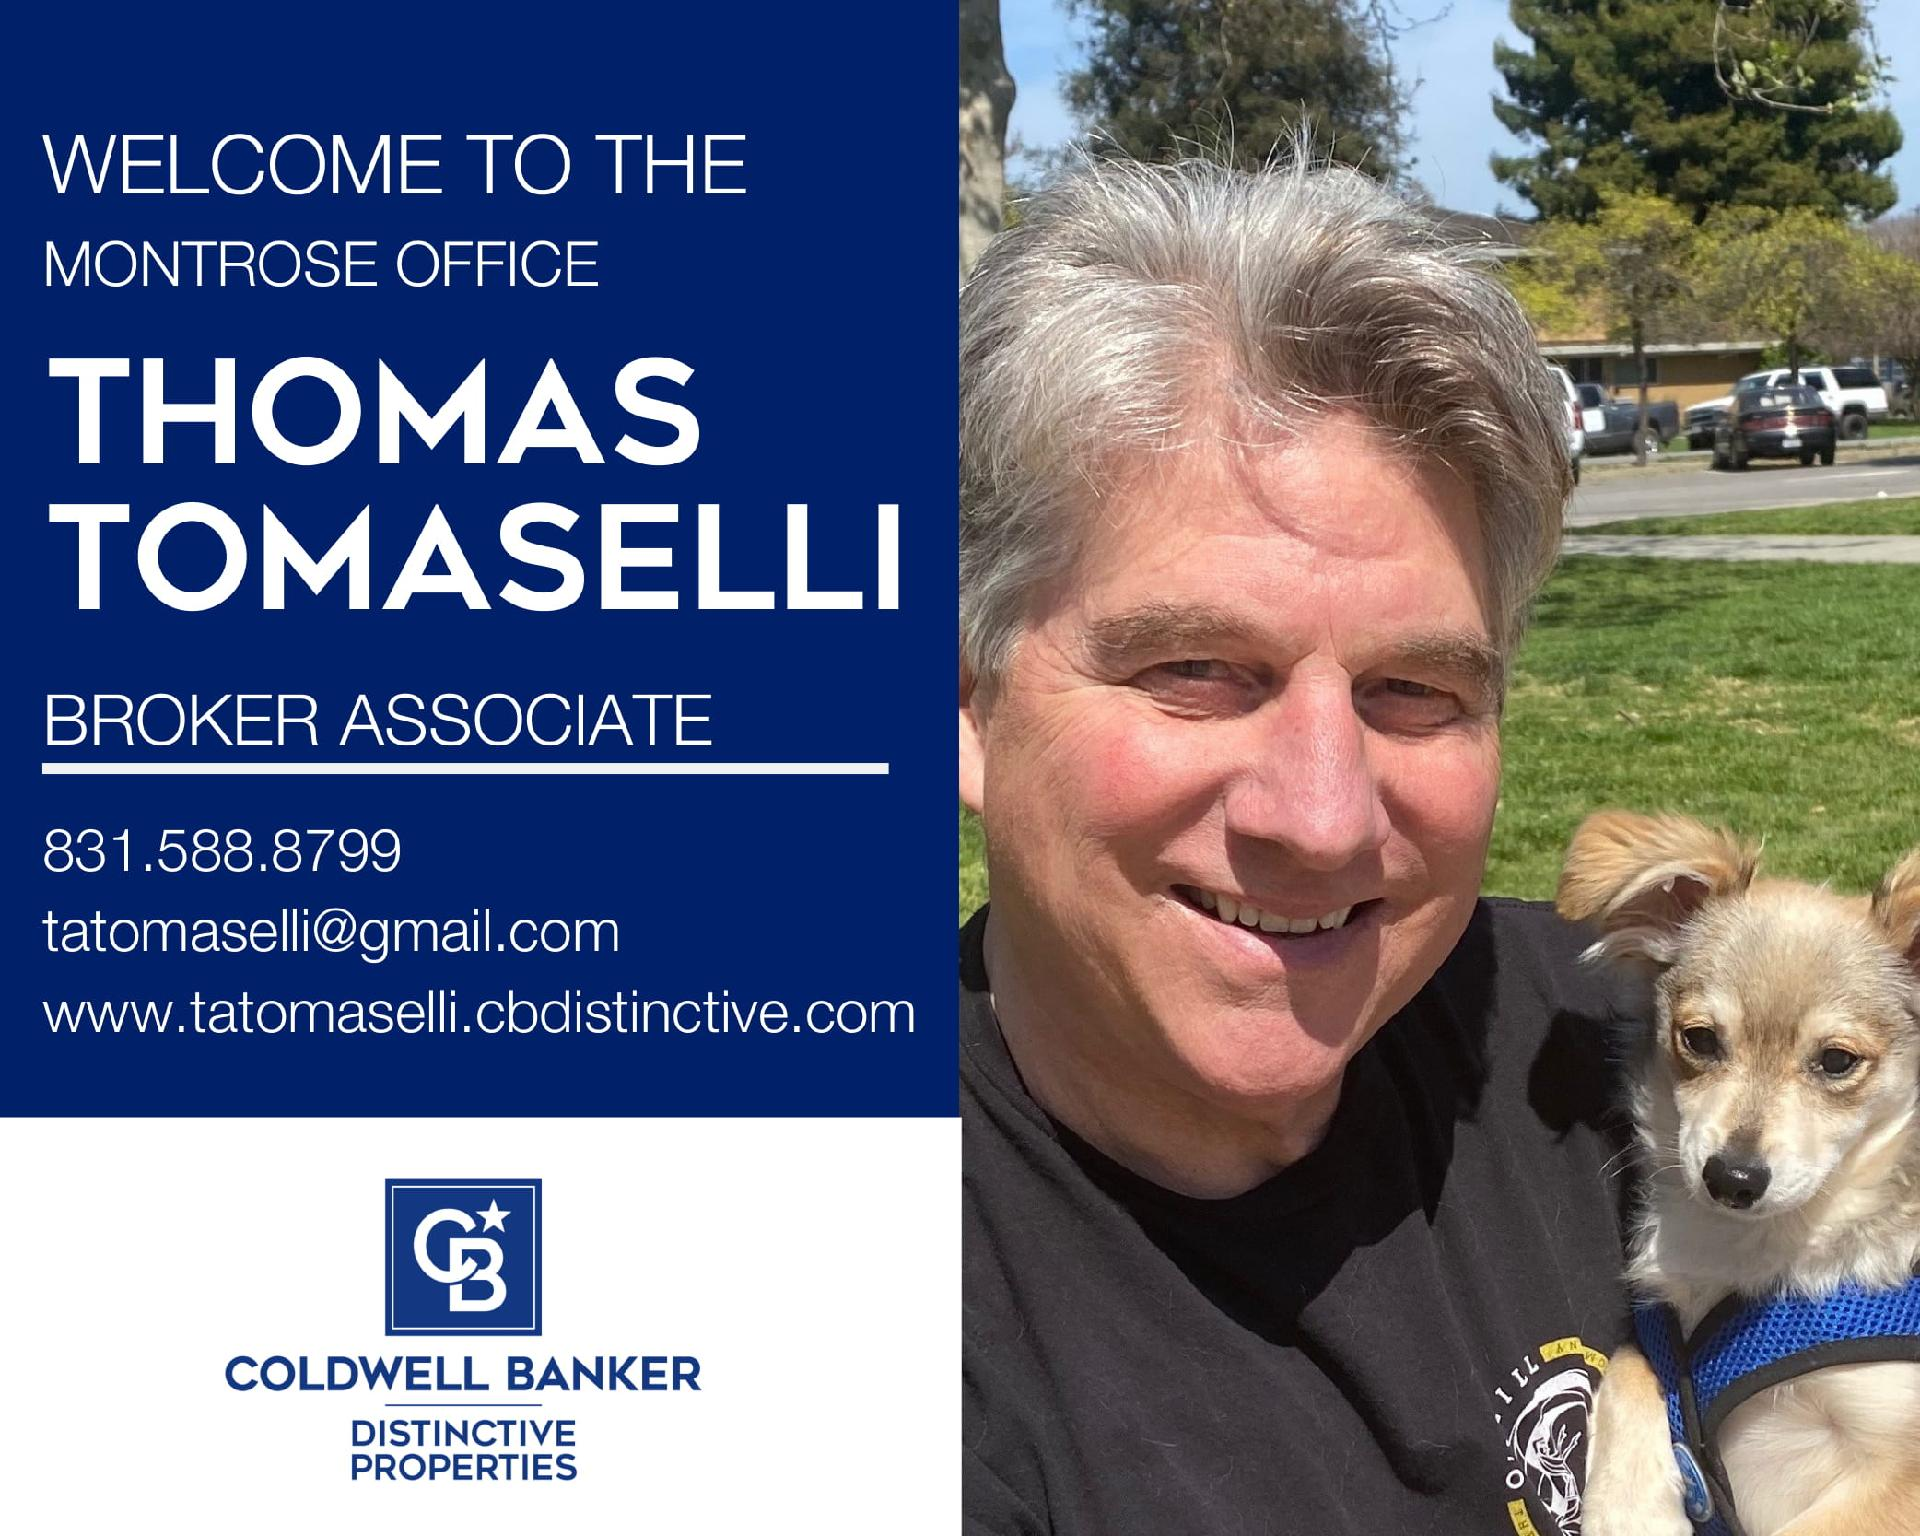 We are excited that Thomas Tomaselli has joined our Coldwell Banker family! Main Photo